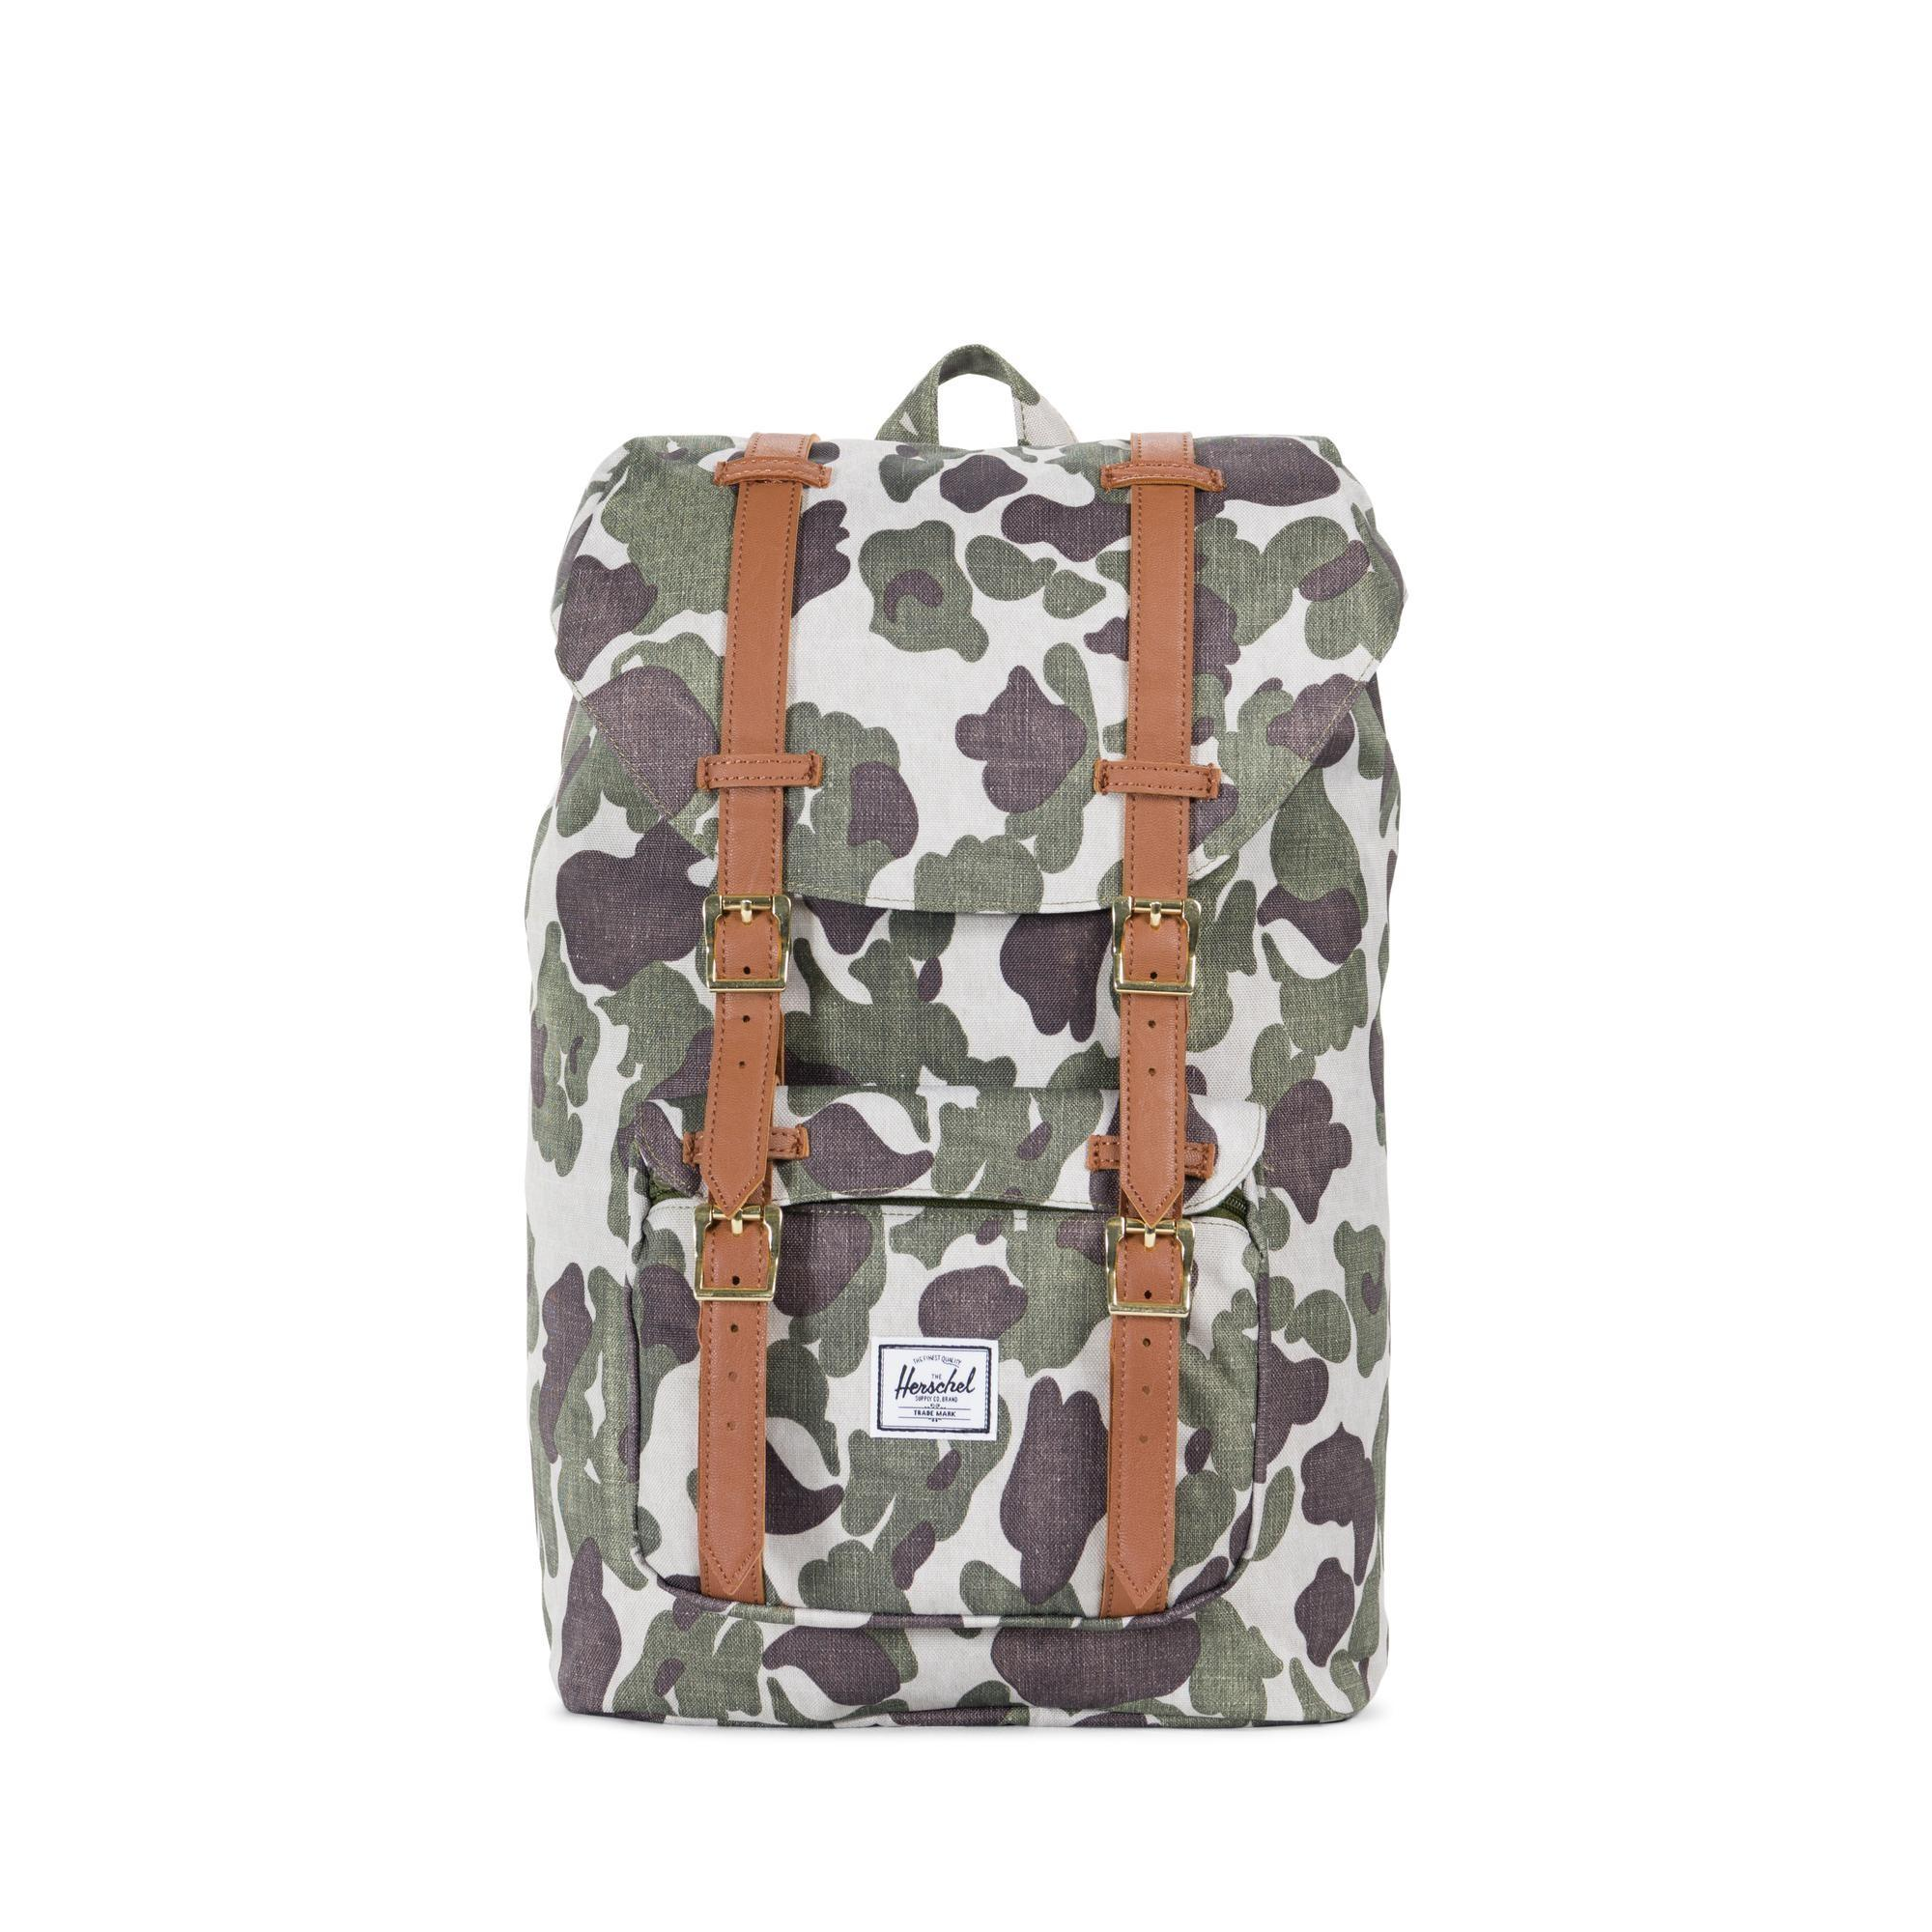 009267a3c43a Herschel Little America Mid-Volume - Frog Camo Tan Synthetic Leather